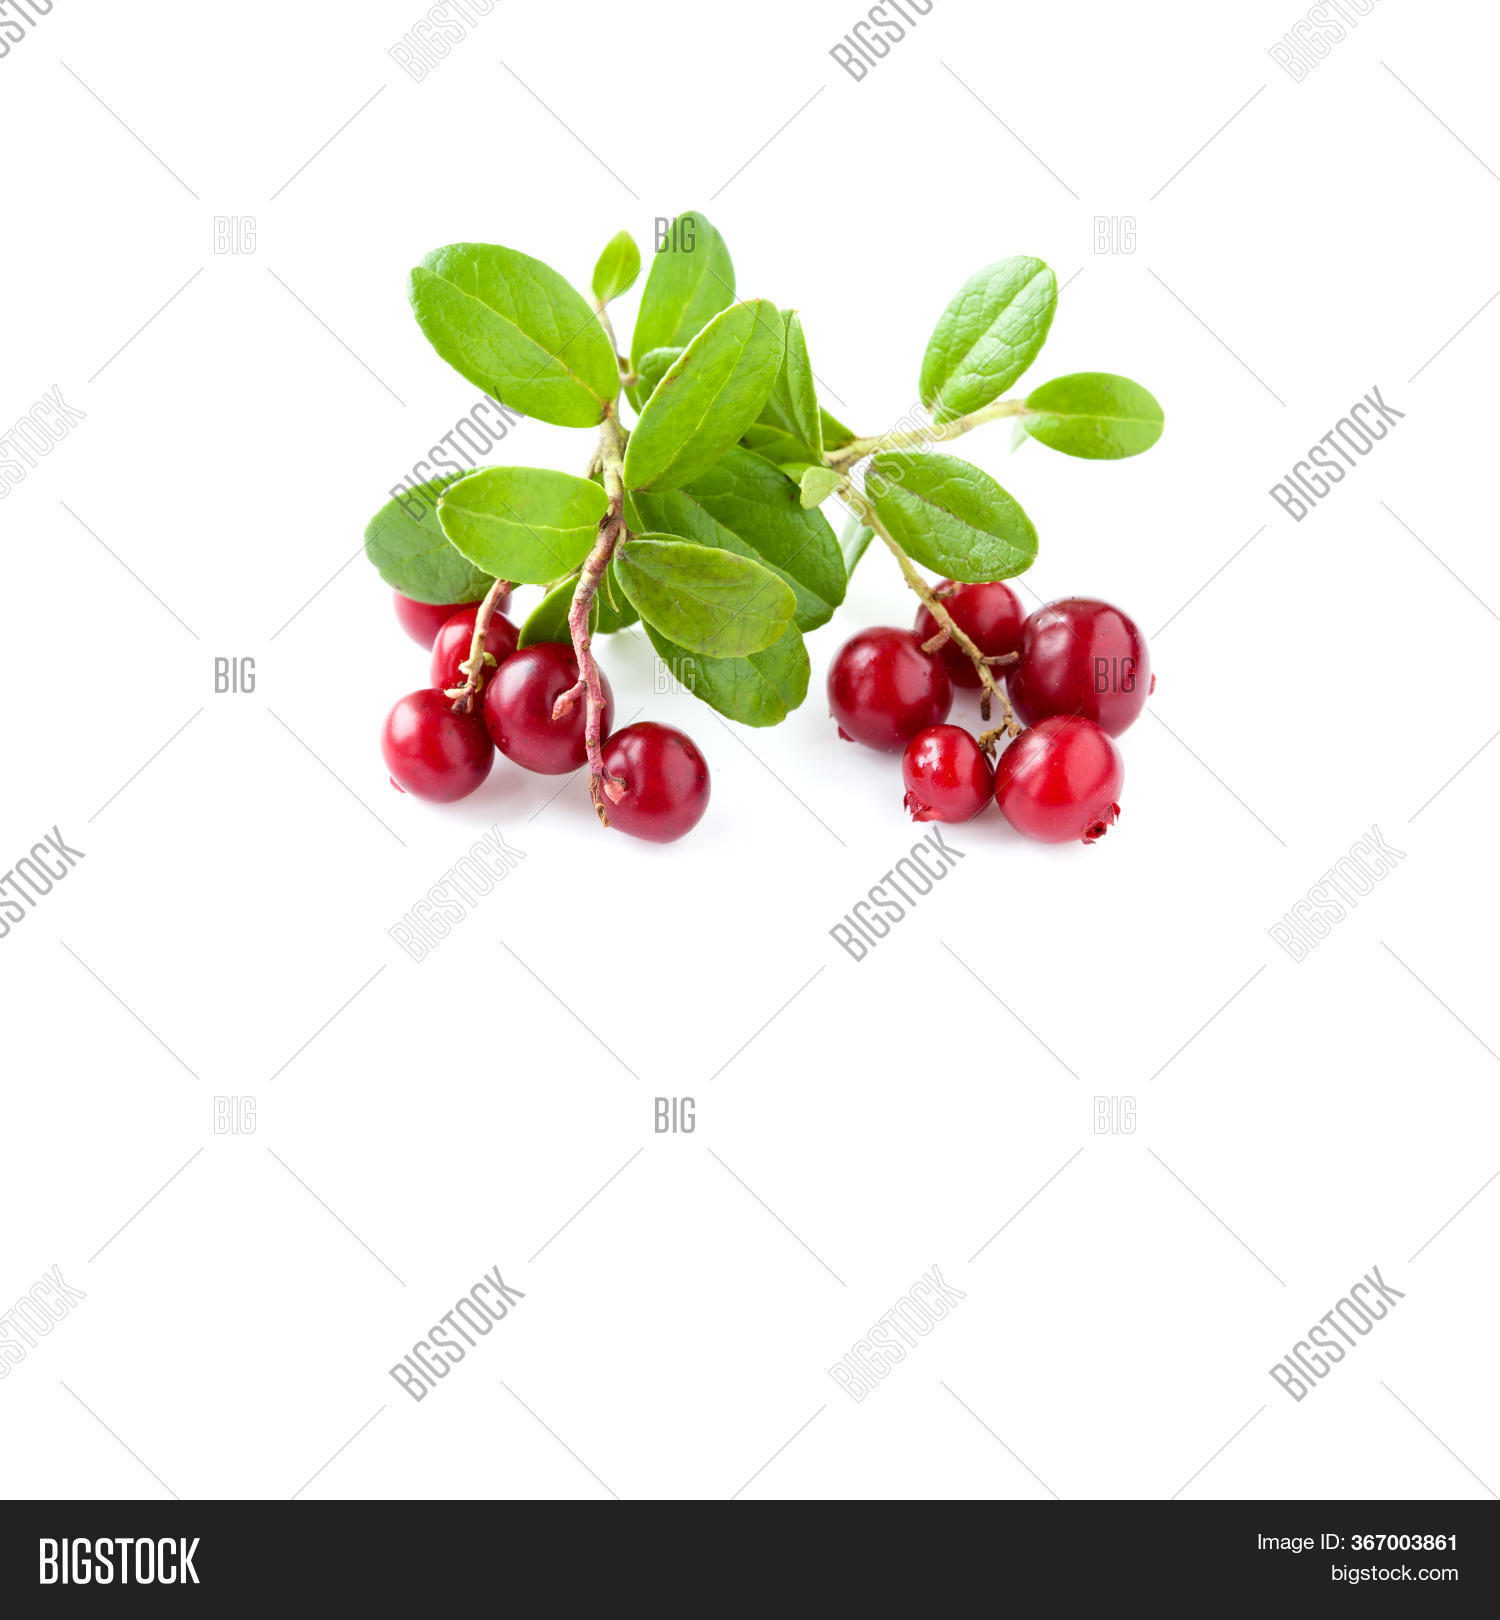 Wild Cowberry Isolated Image & Photo Free Trial   Bigstock